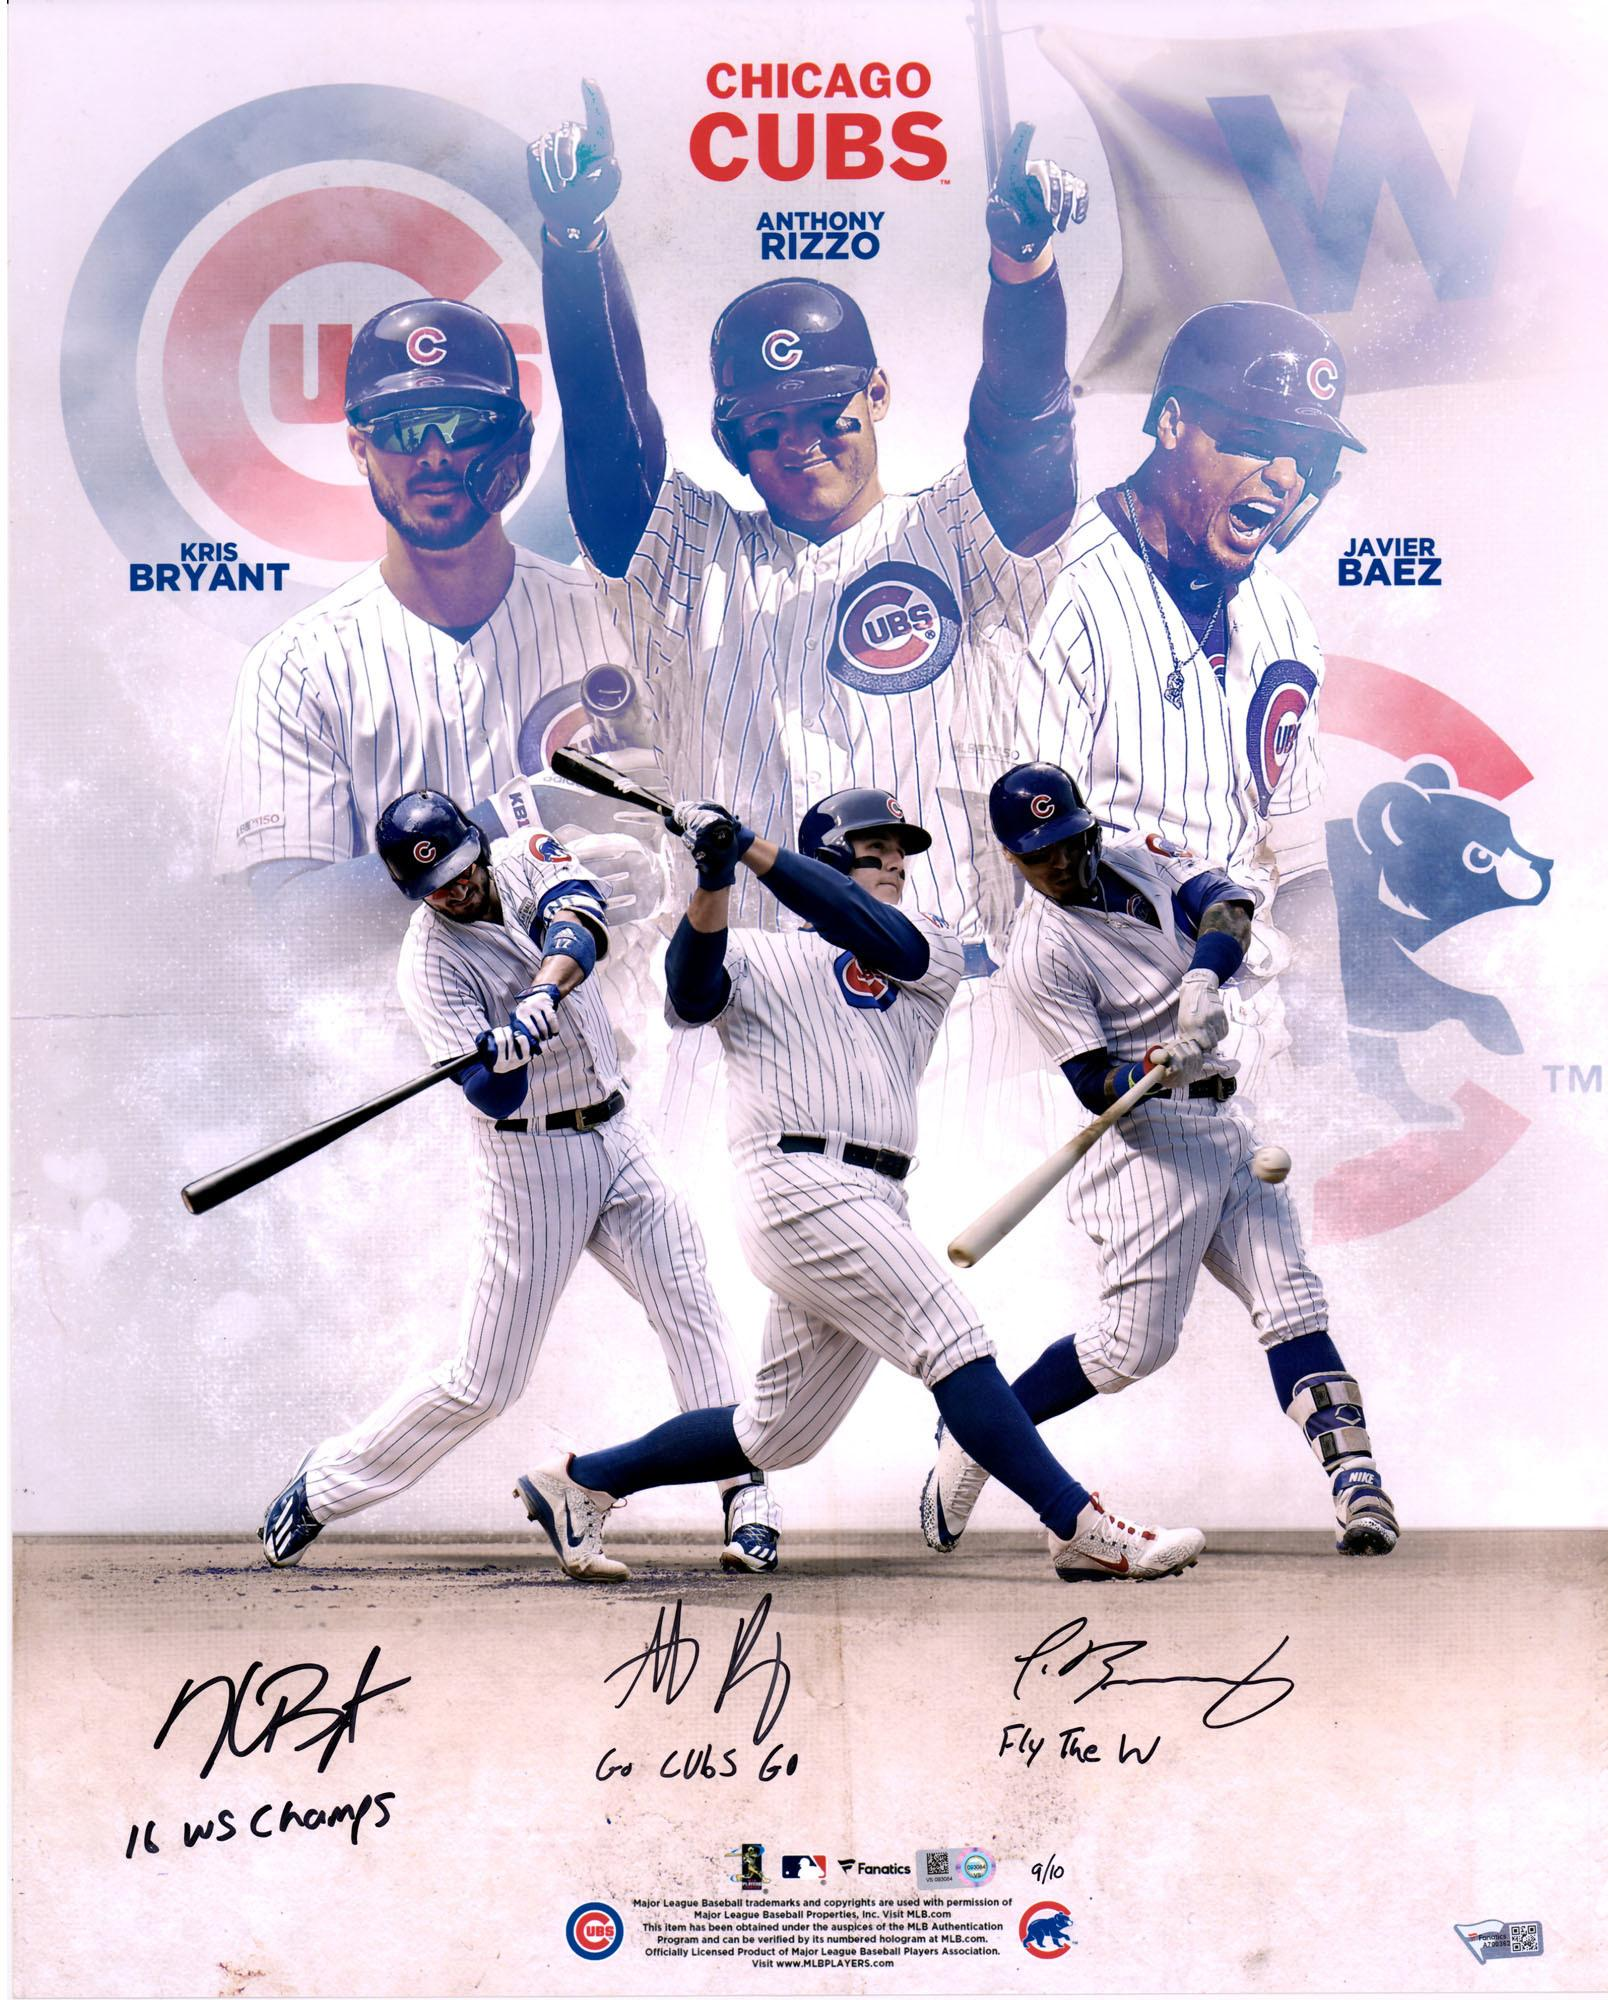 kris bryant anthony rizzo and javier baez chicago cubs autographed 16 x 20 stylized photograph with multiple inscriptions limited edition of 10